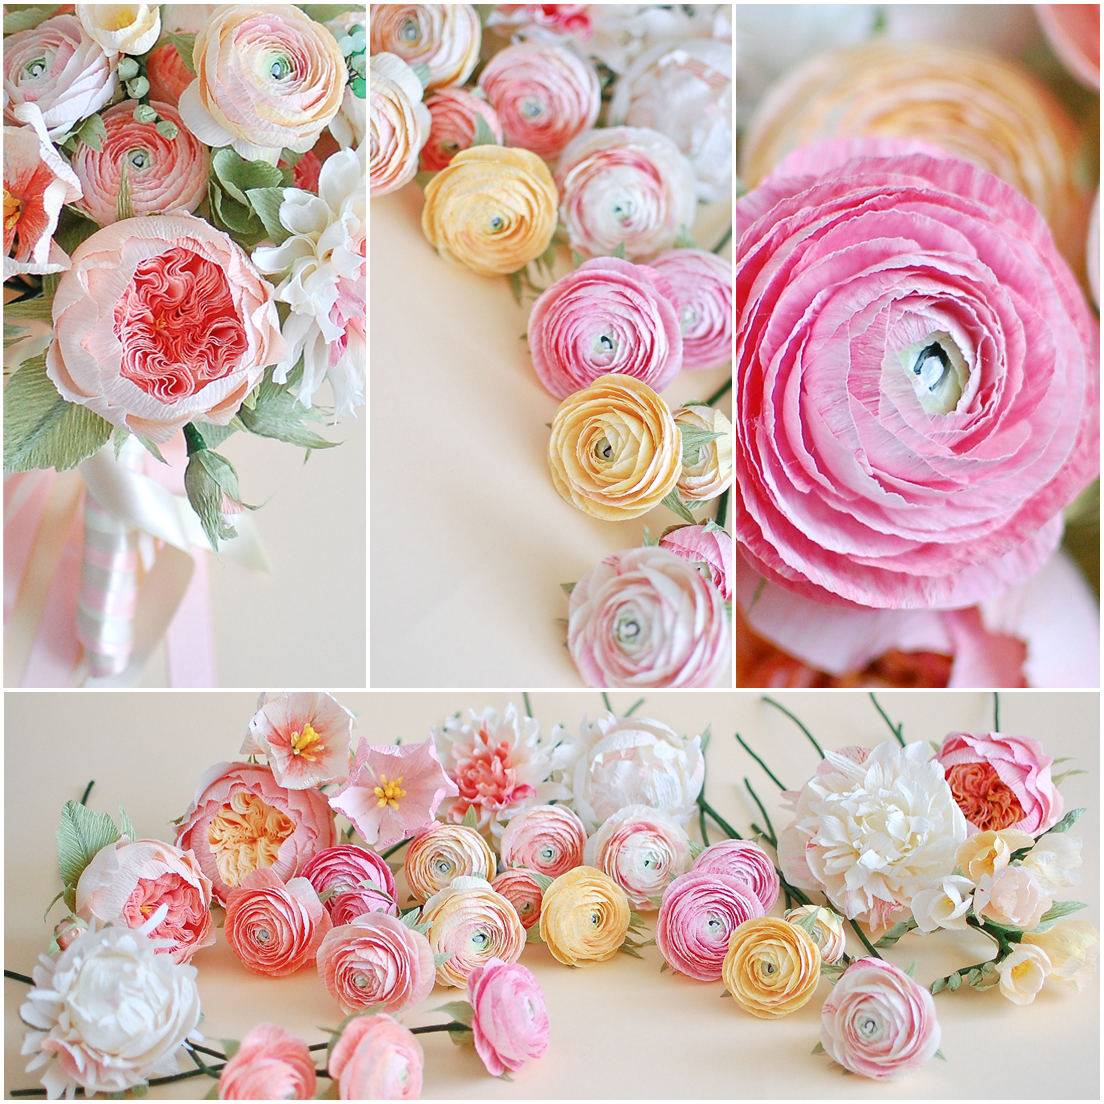 For the love of ranunculus christine paper design ranunculus paper flowers bridal bouquet ranunculus 1 mightylinksfo